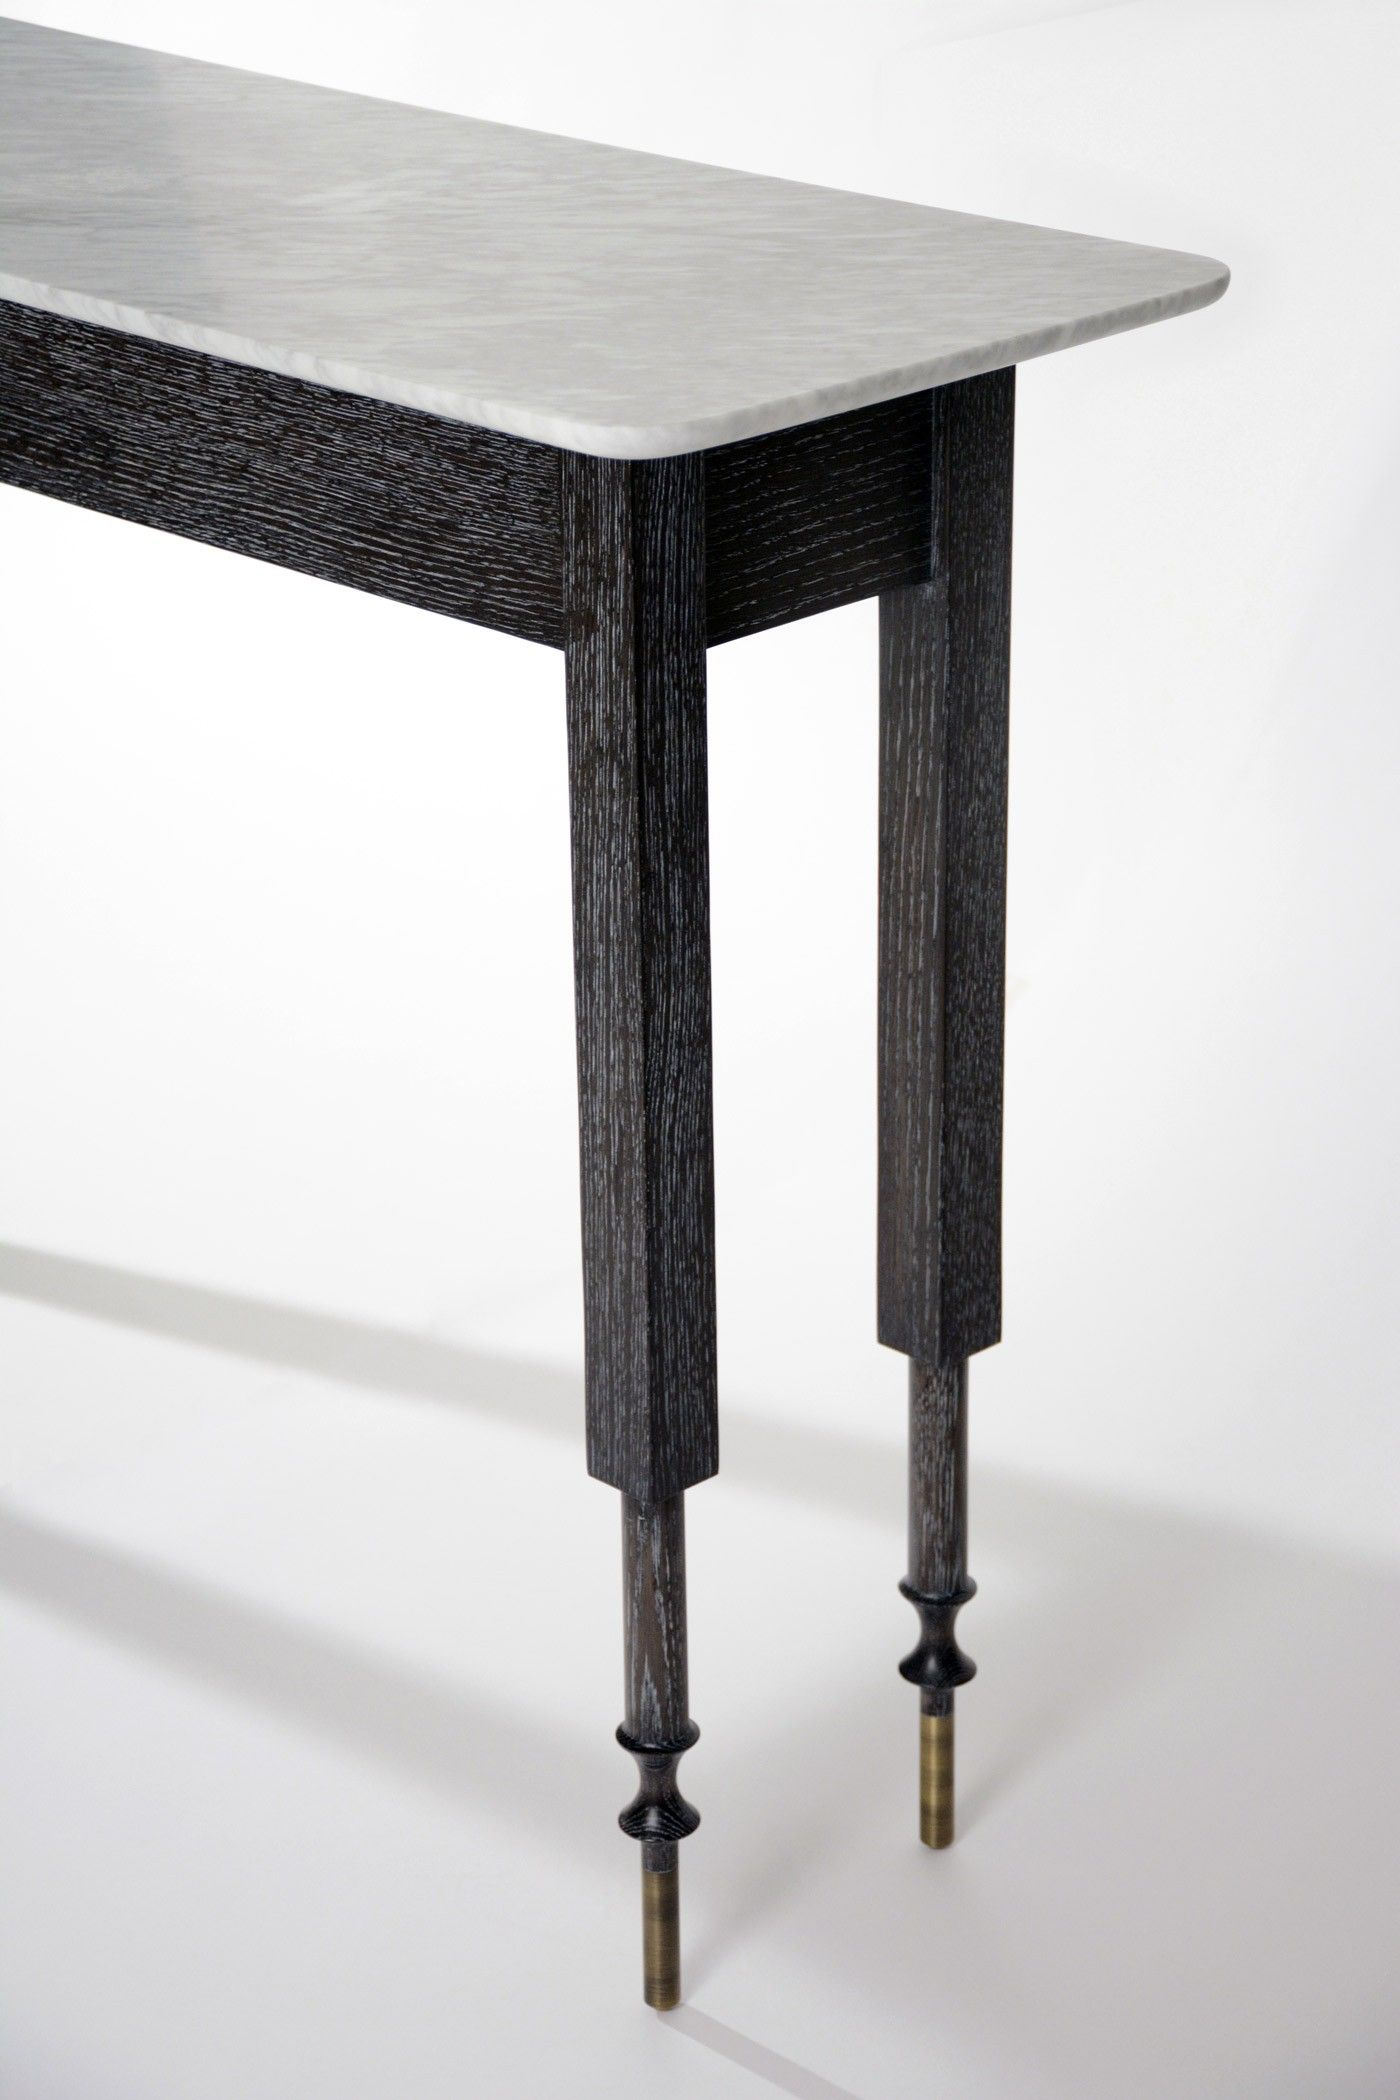 Erland console table matthew fairbank design new york for Design table new york